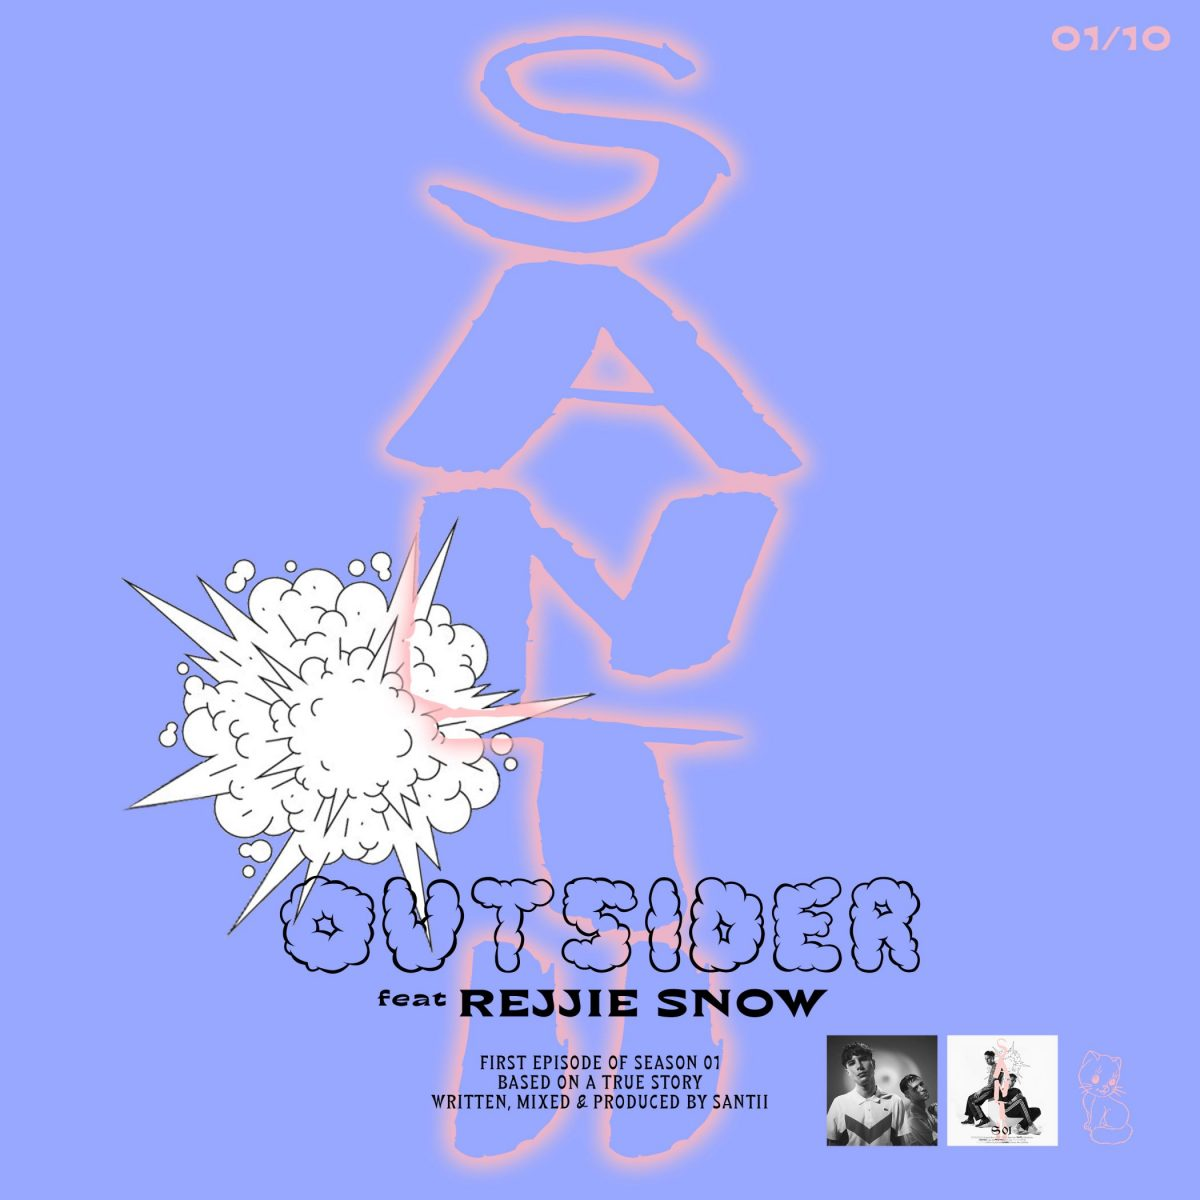 Santii feat. Rejjie Snow, guarda il video di Outsider